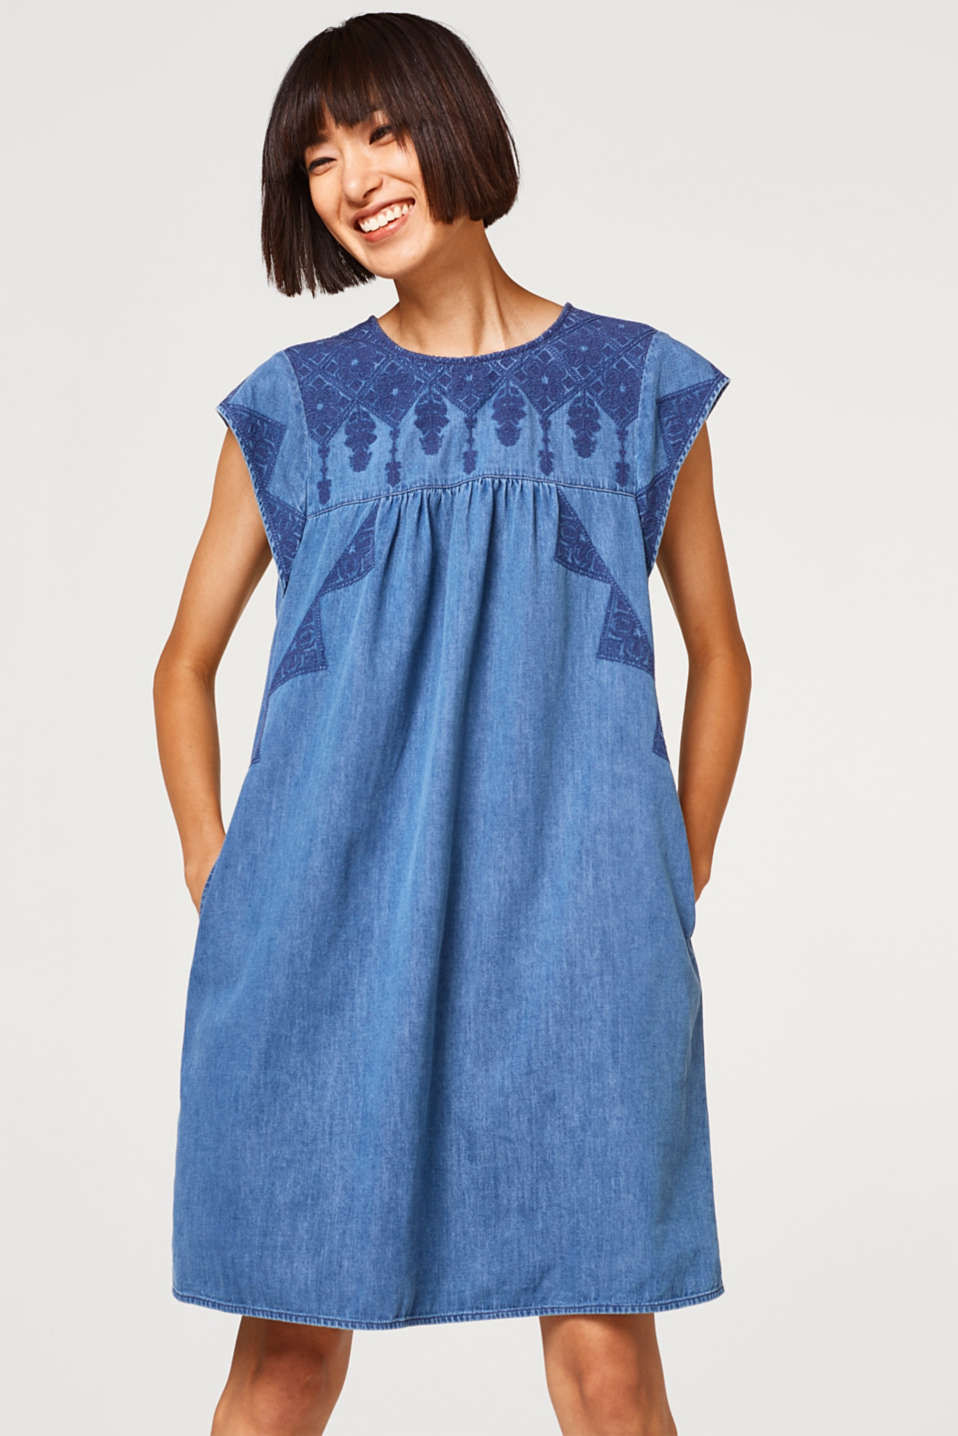 Esprit - Denim dress with geometric embroidery